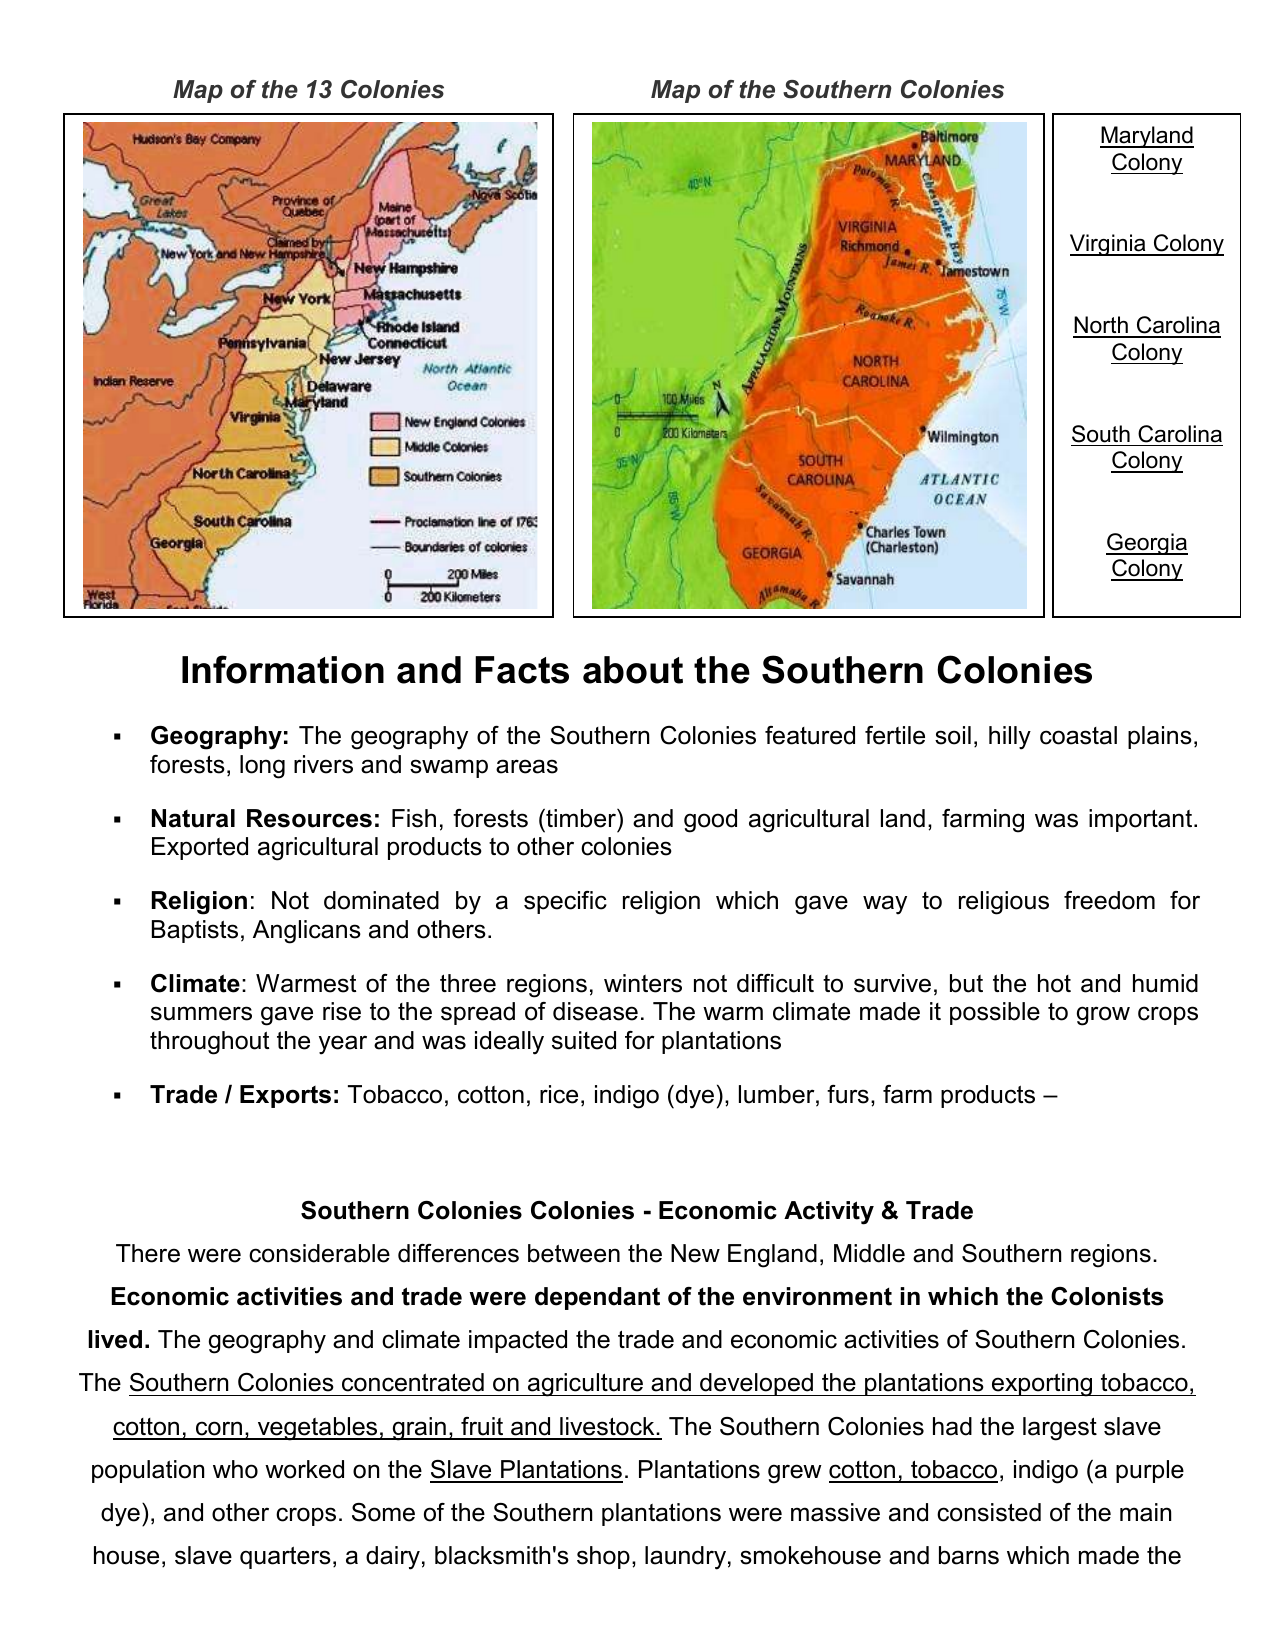 Map Of Georgia Colony.Information And Facts About The Southern Colonies